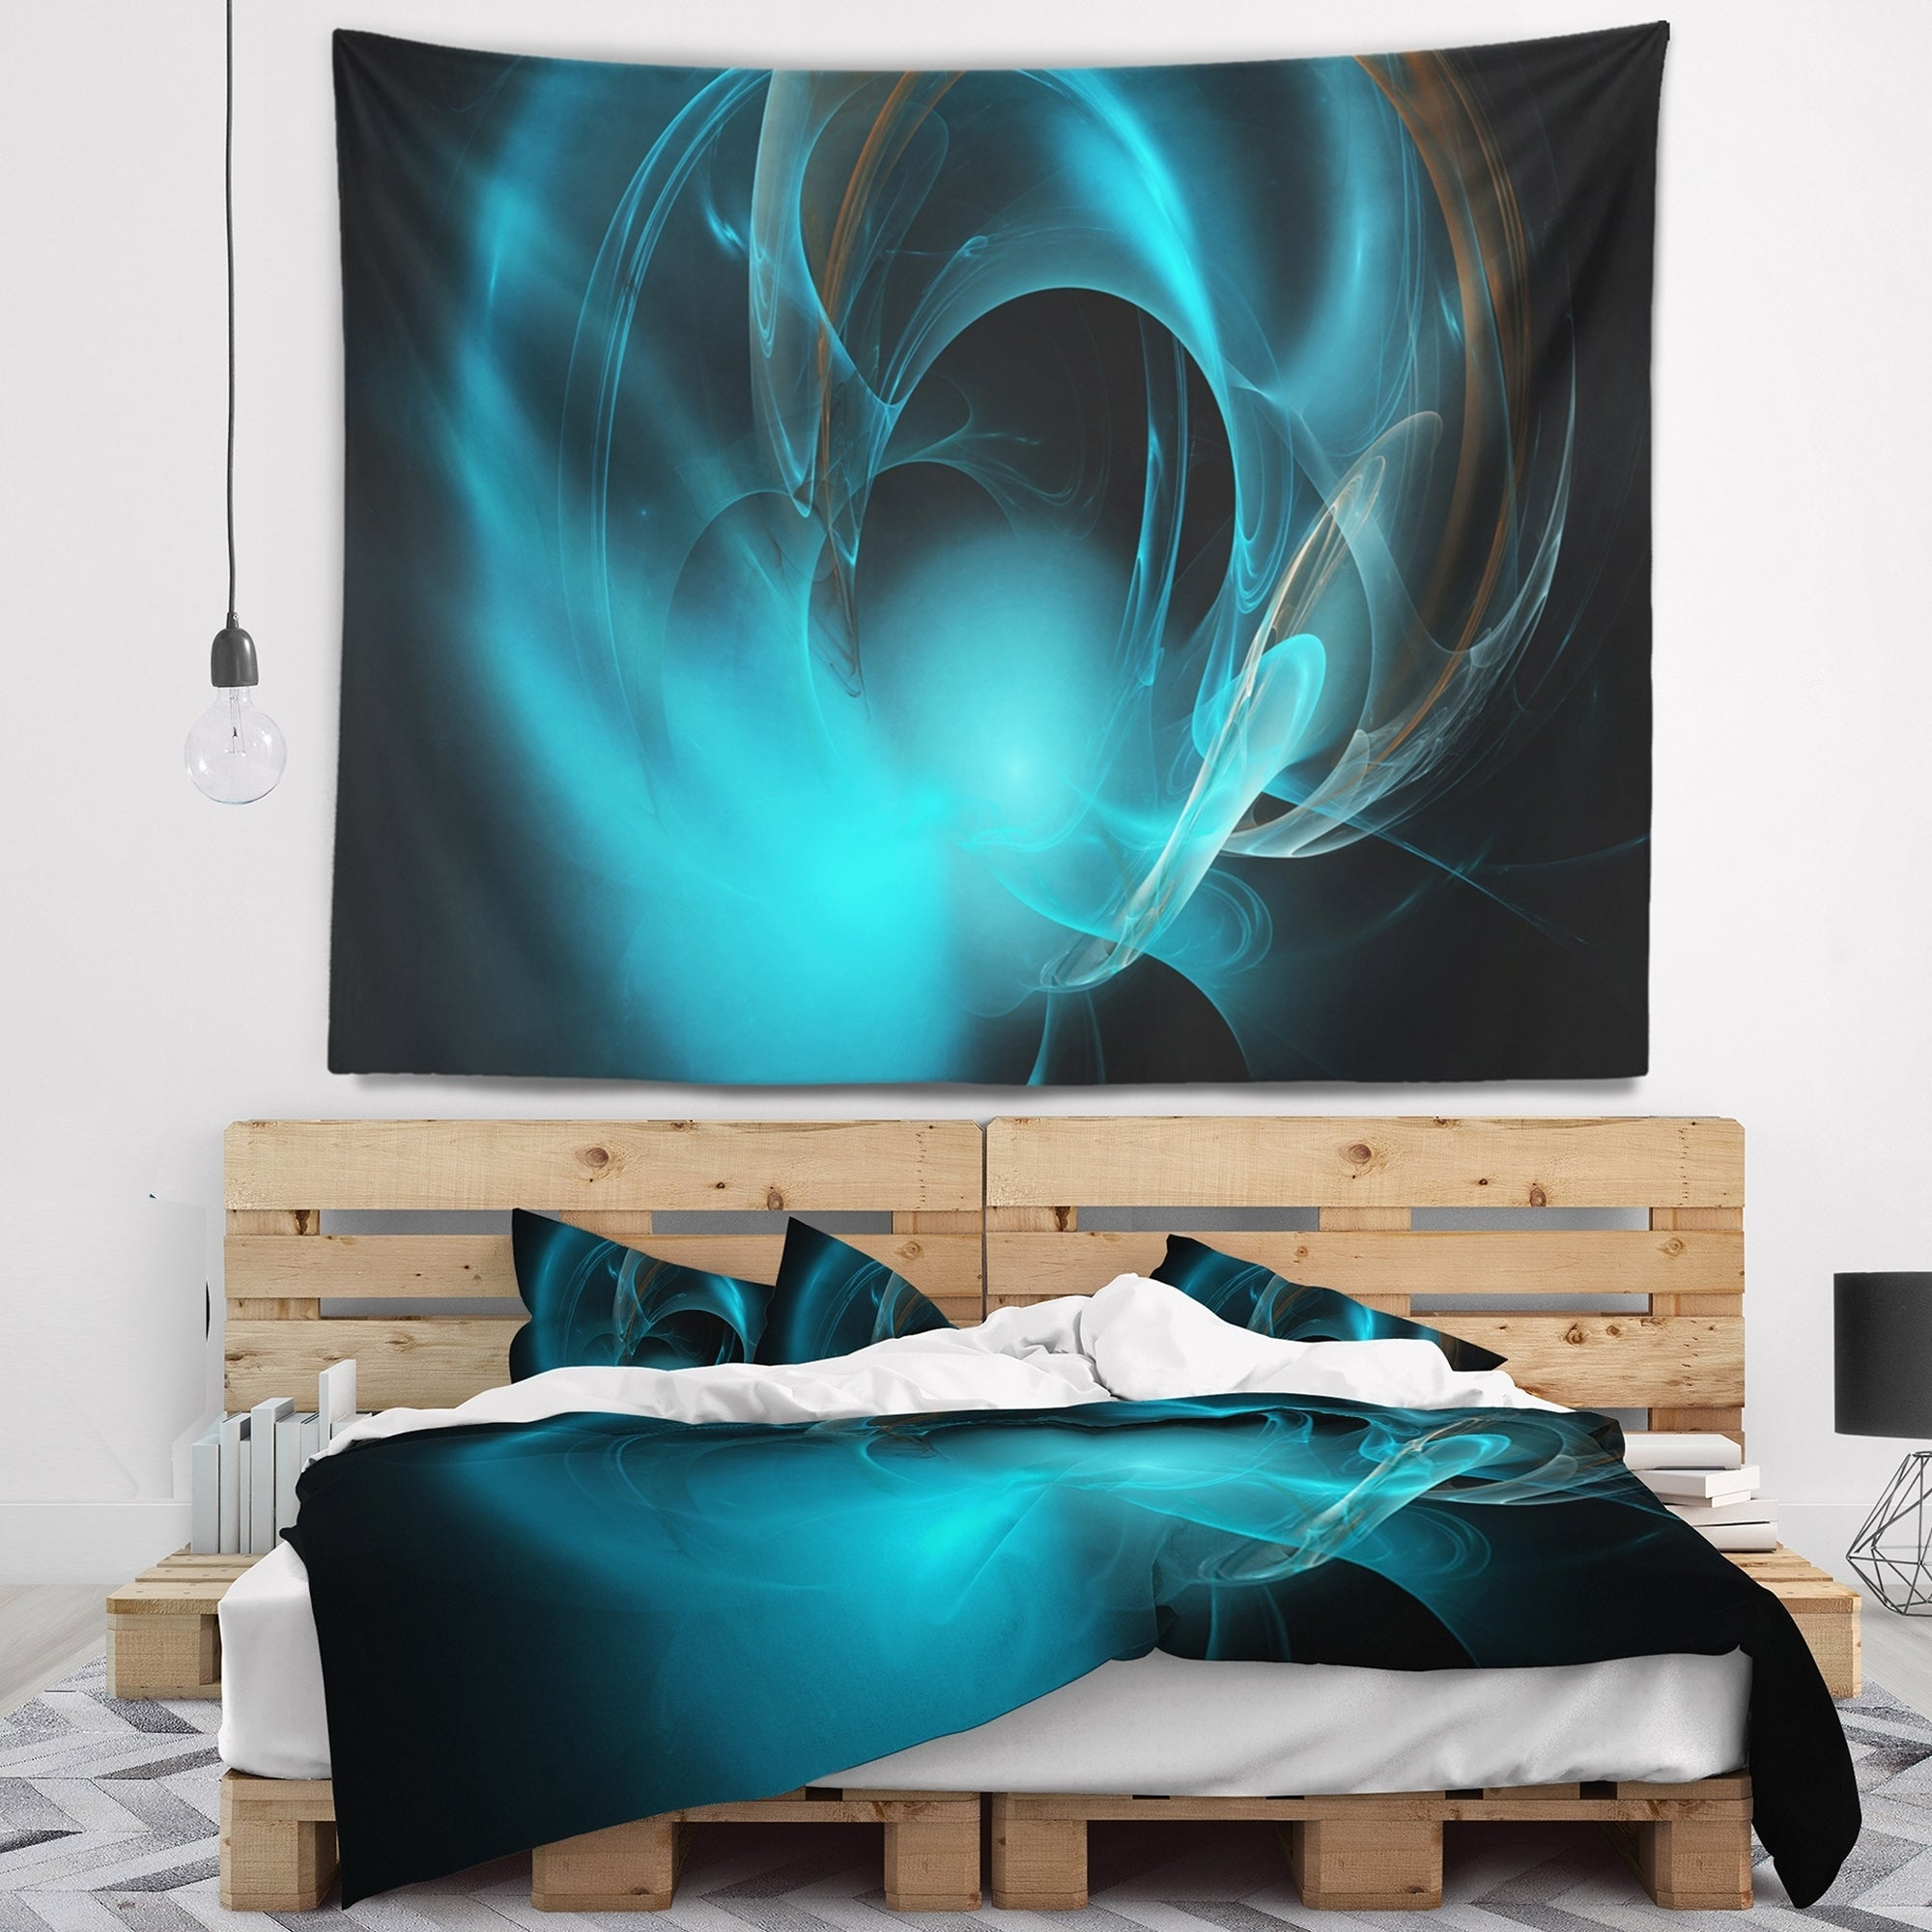 Sofa Throw Pillow 20 Insert Printed On Both Side Designart CU16283-20-20-C Blue Fractal Galactic Nebula Abstract Round Cushion Cover for Living Room